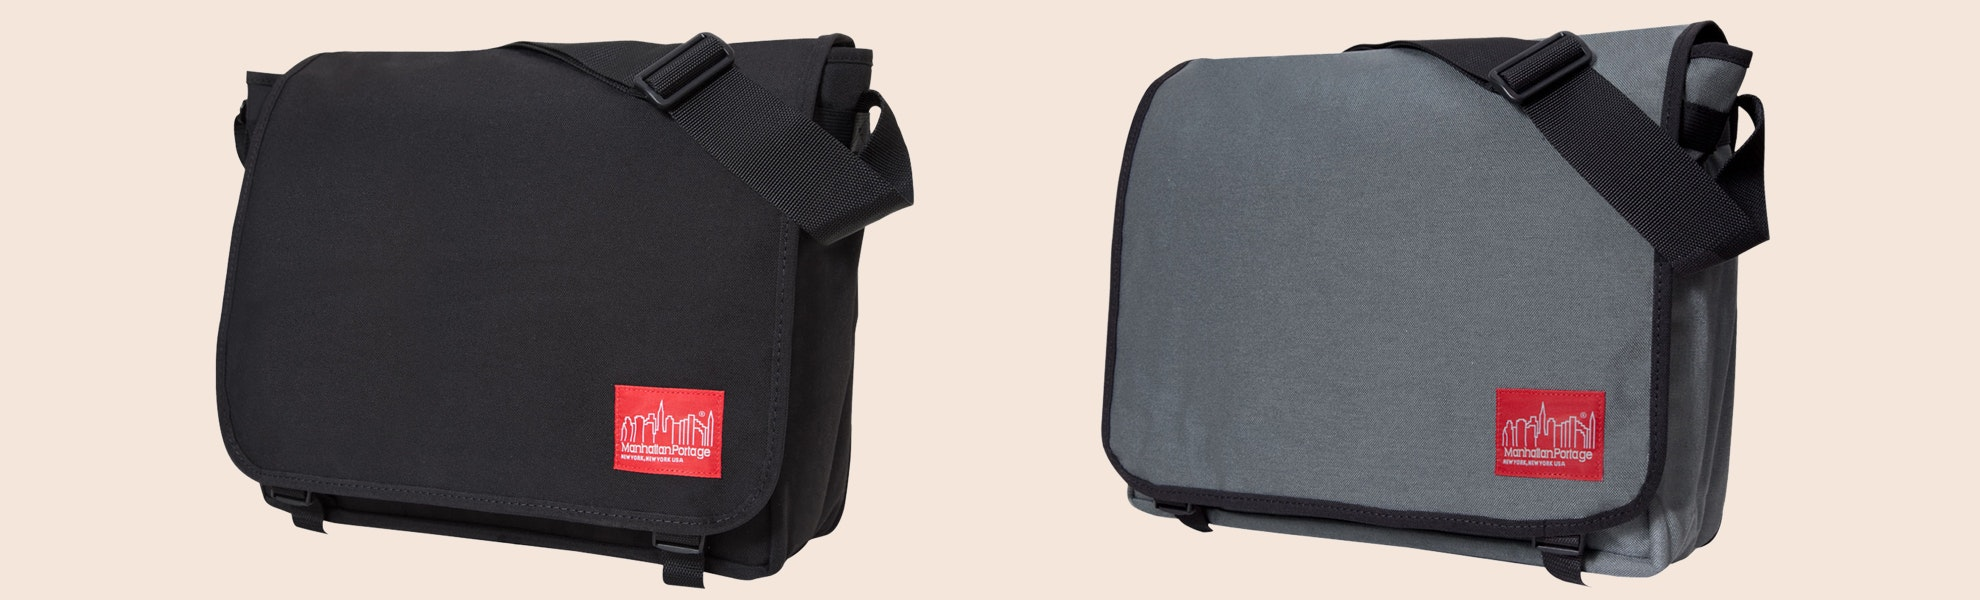 Manhattan Portage Deluxe Computer Bags